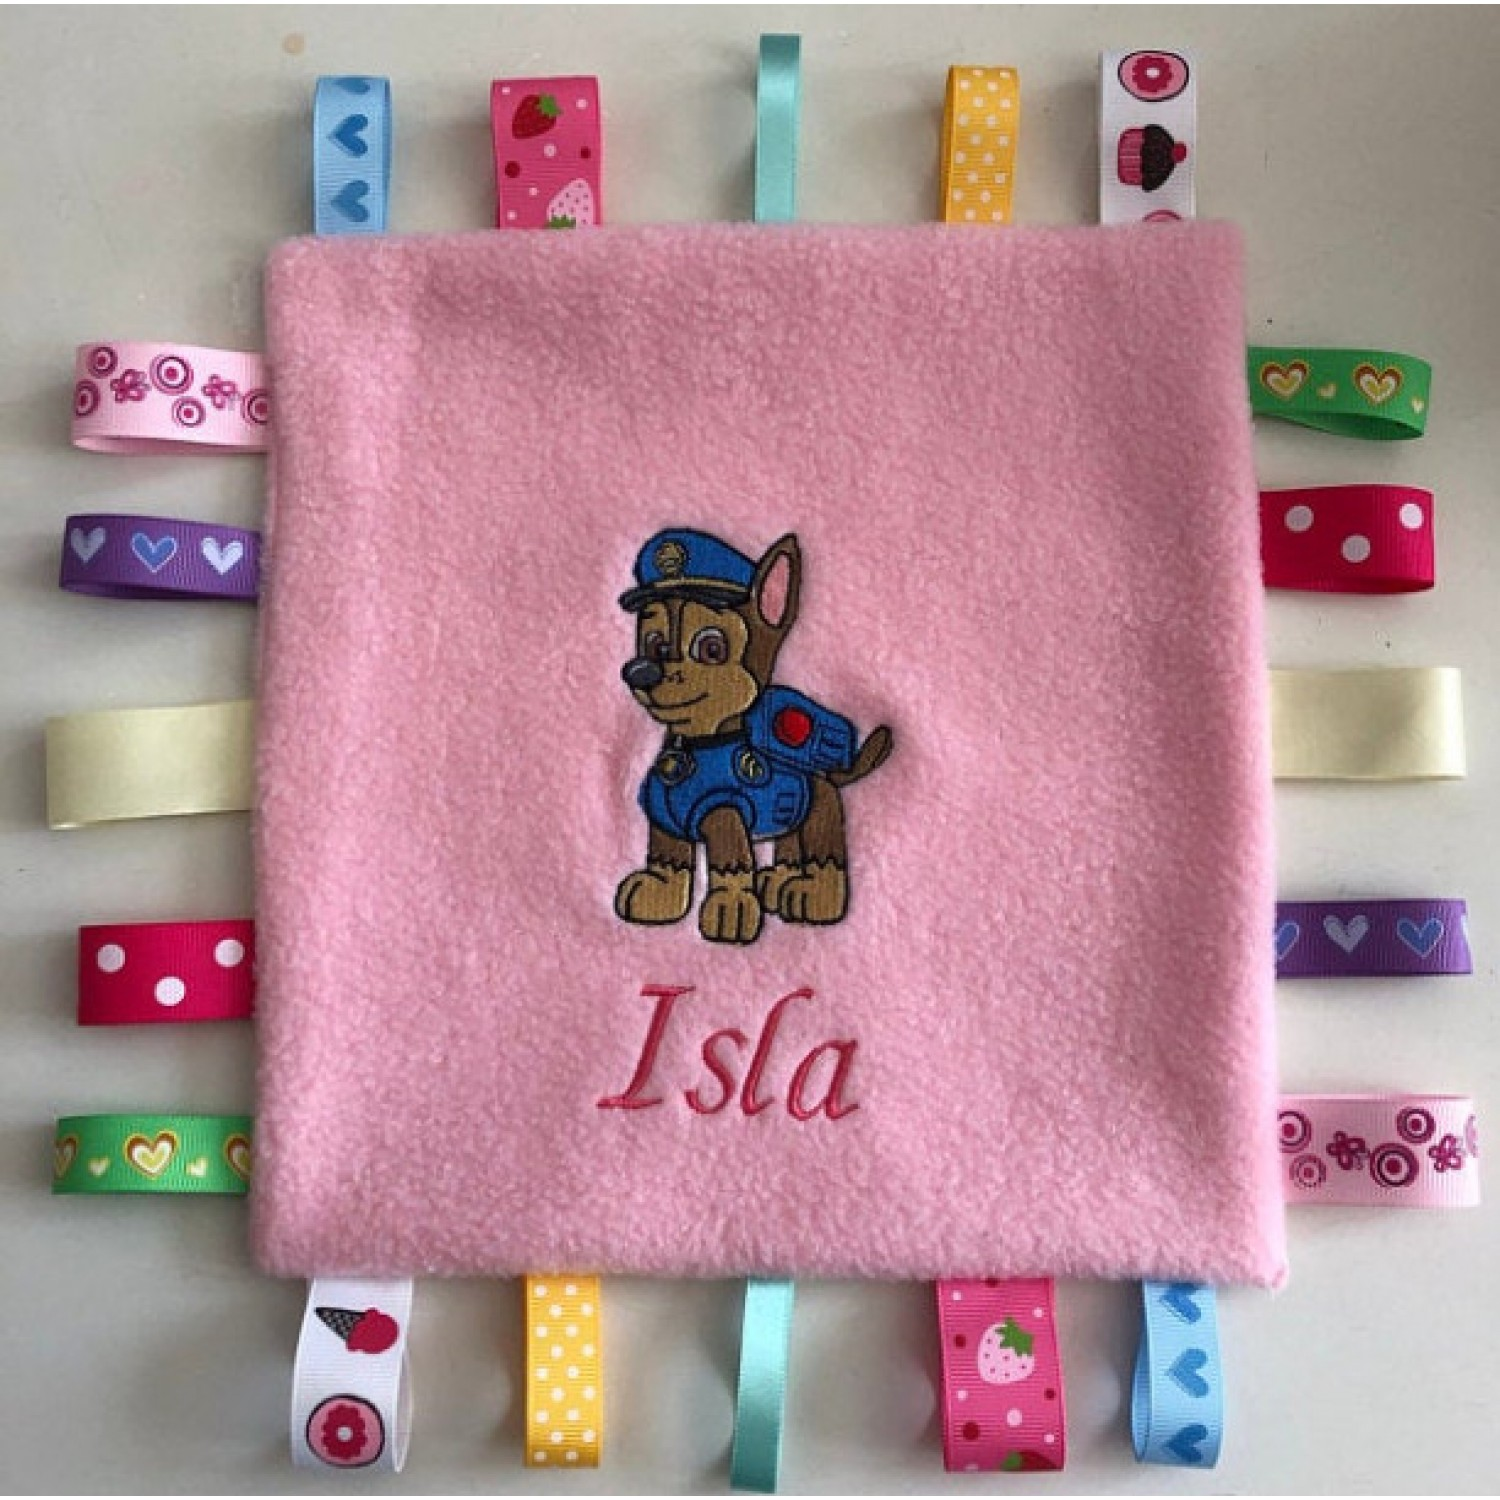 Paw Patrol Chase embroidery design